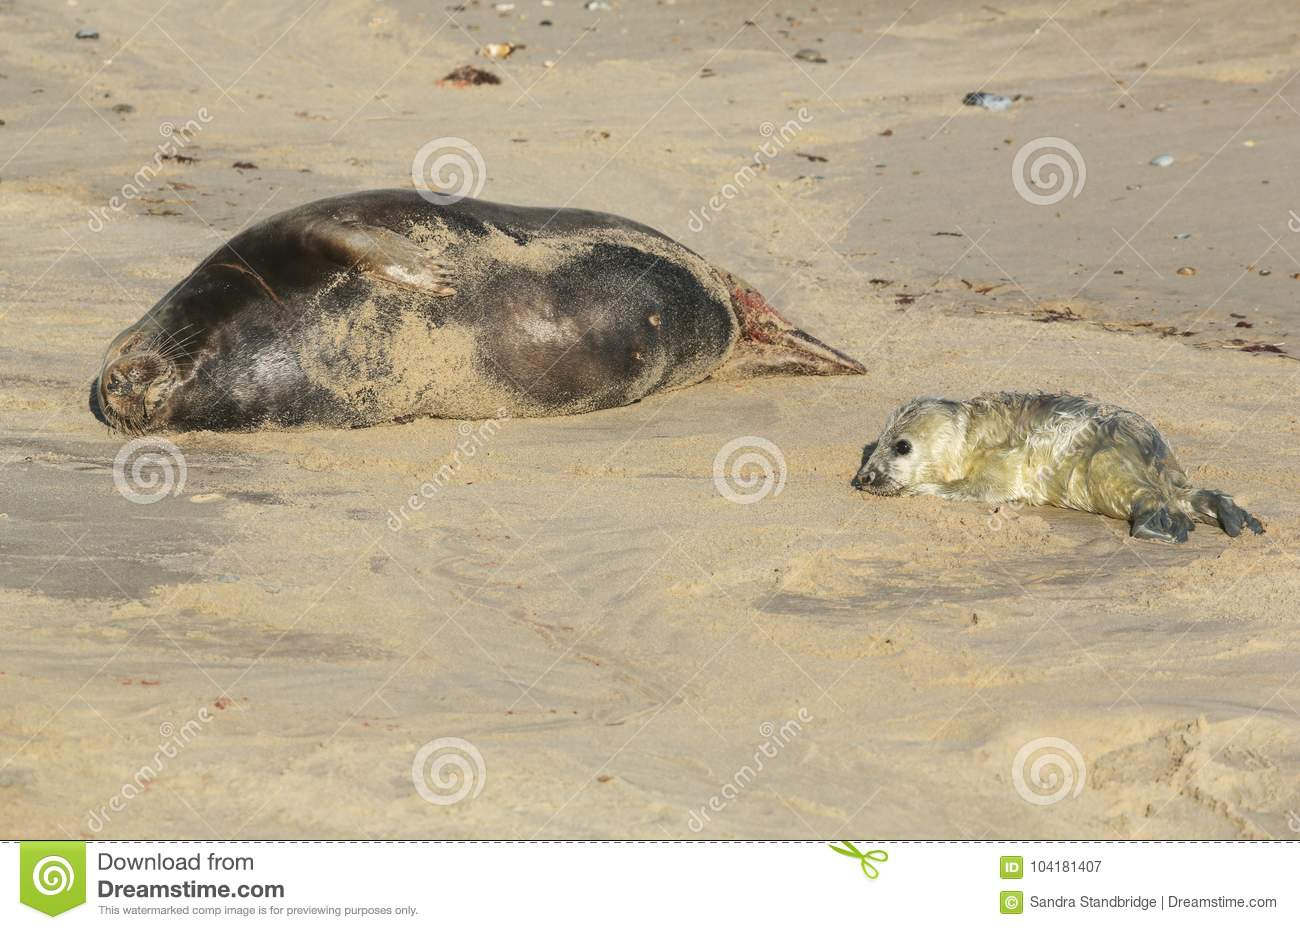 A newly born Grey Seal pup Halichoerus grypus lying on the beach near its resting mother at Horsey, Norfolk, UK.